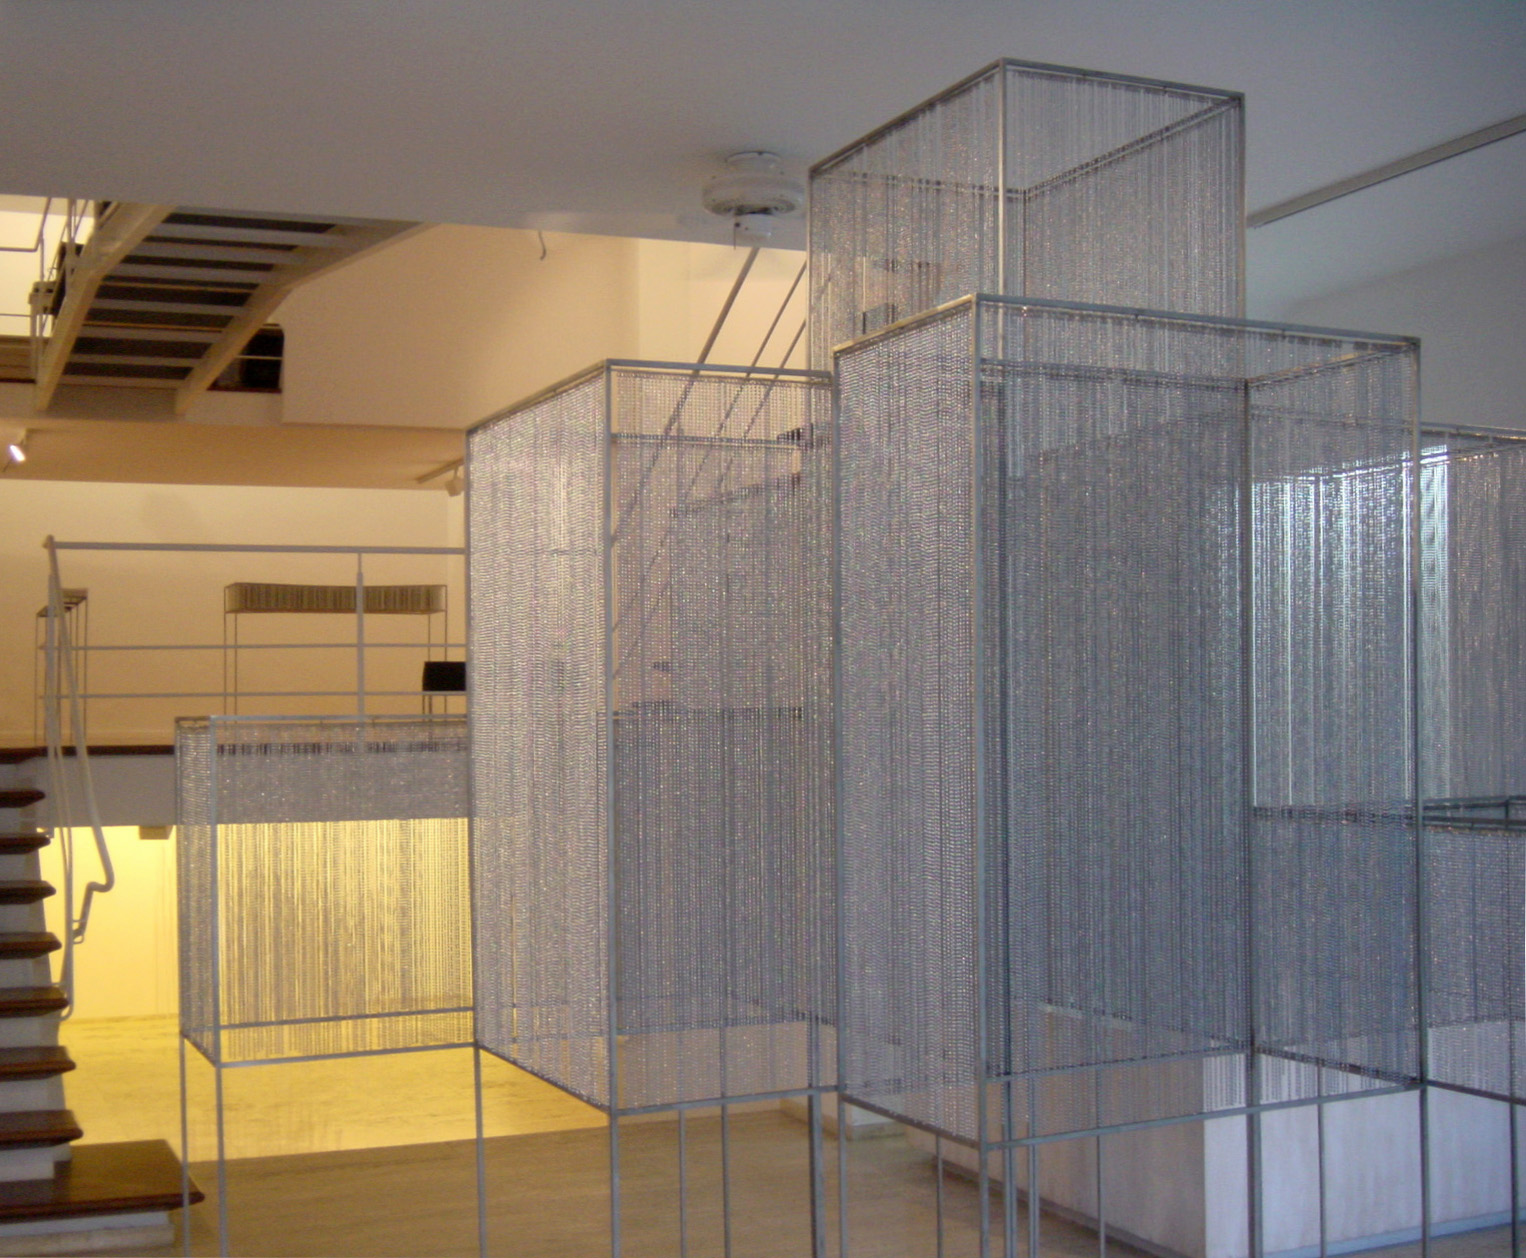 Exhibition view in the Galería Maior of Pollença, 2004